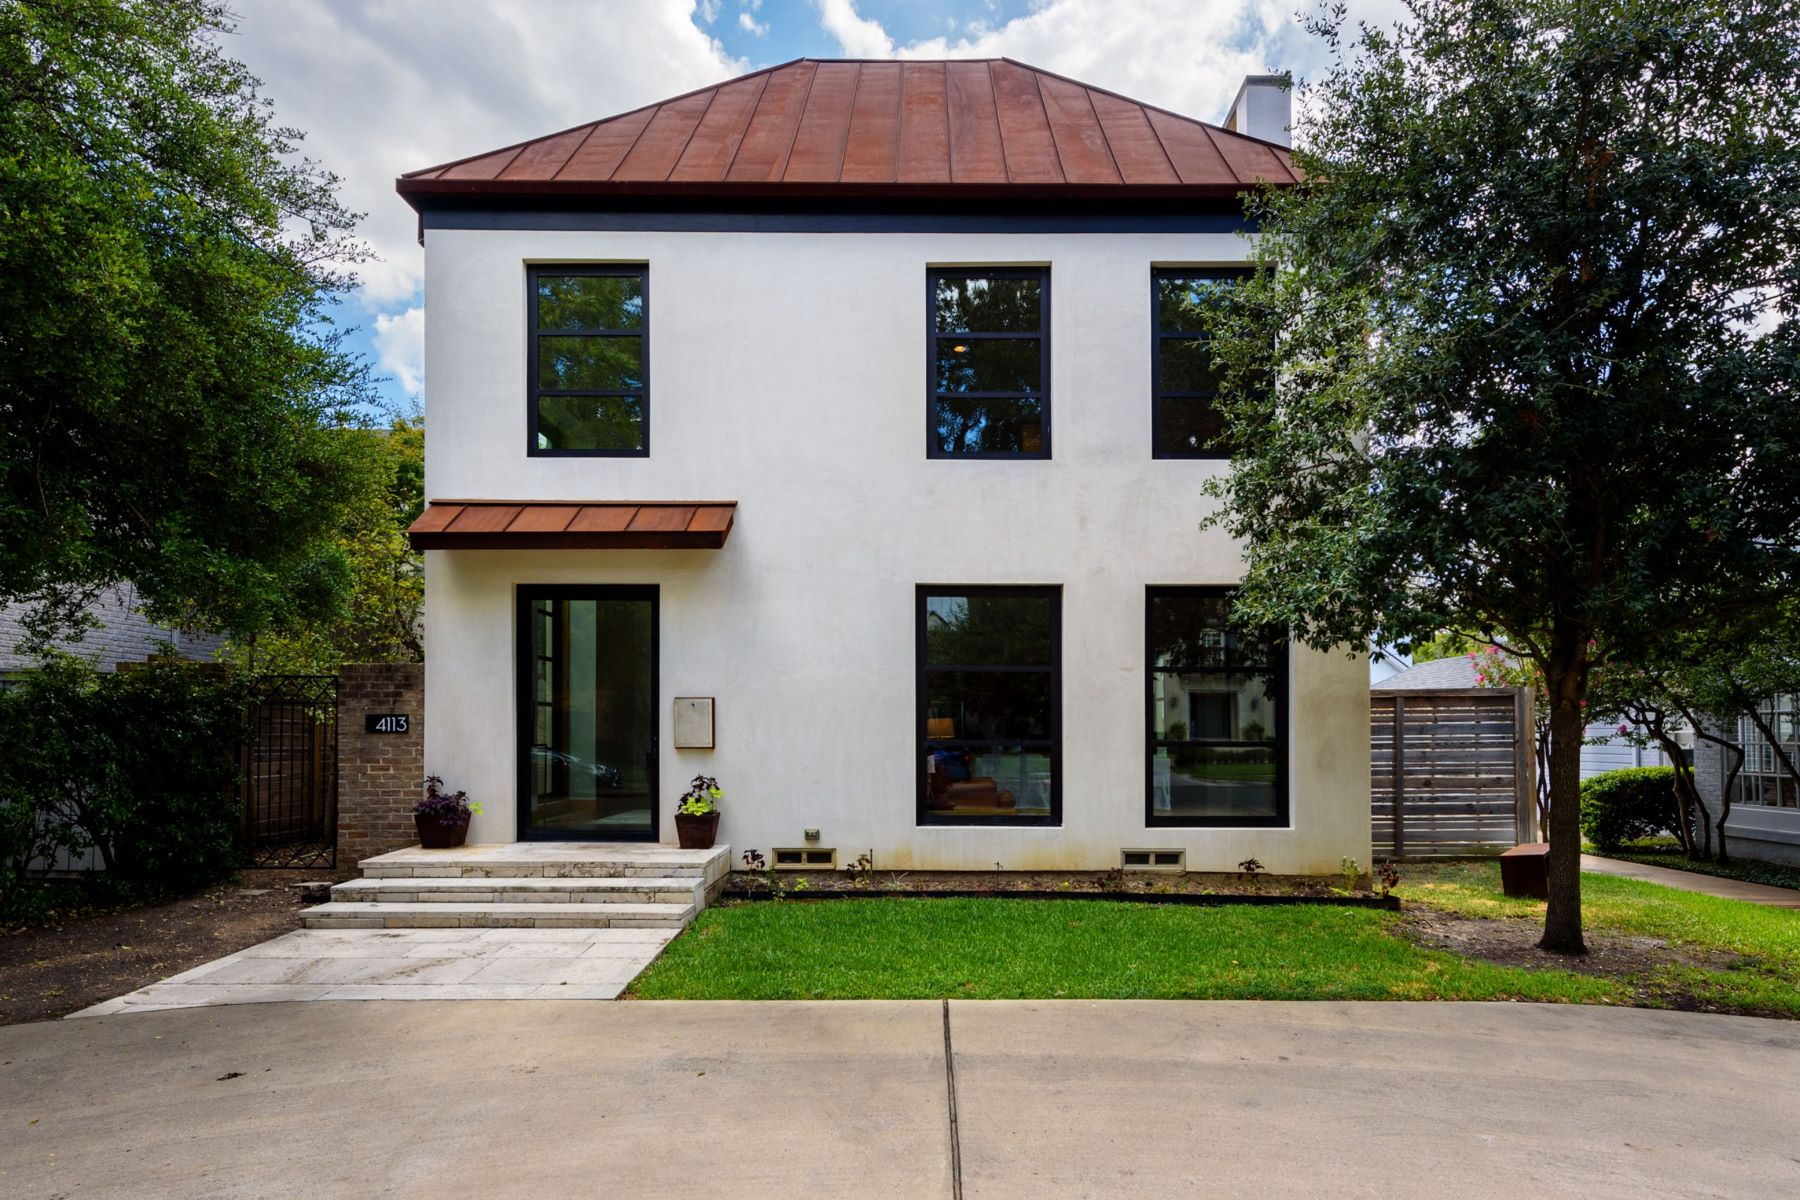 Single Family Homes for Active at Contemporary Home 4113 San Carlos Street University Park, Texas 75205 United States